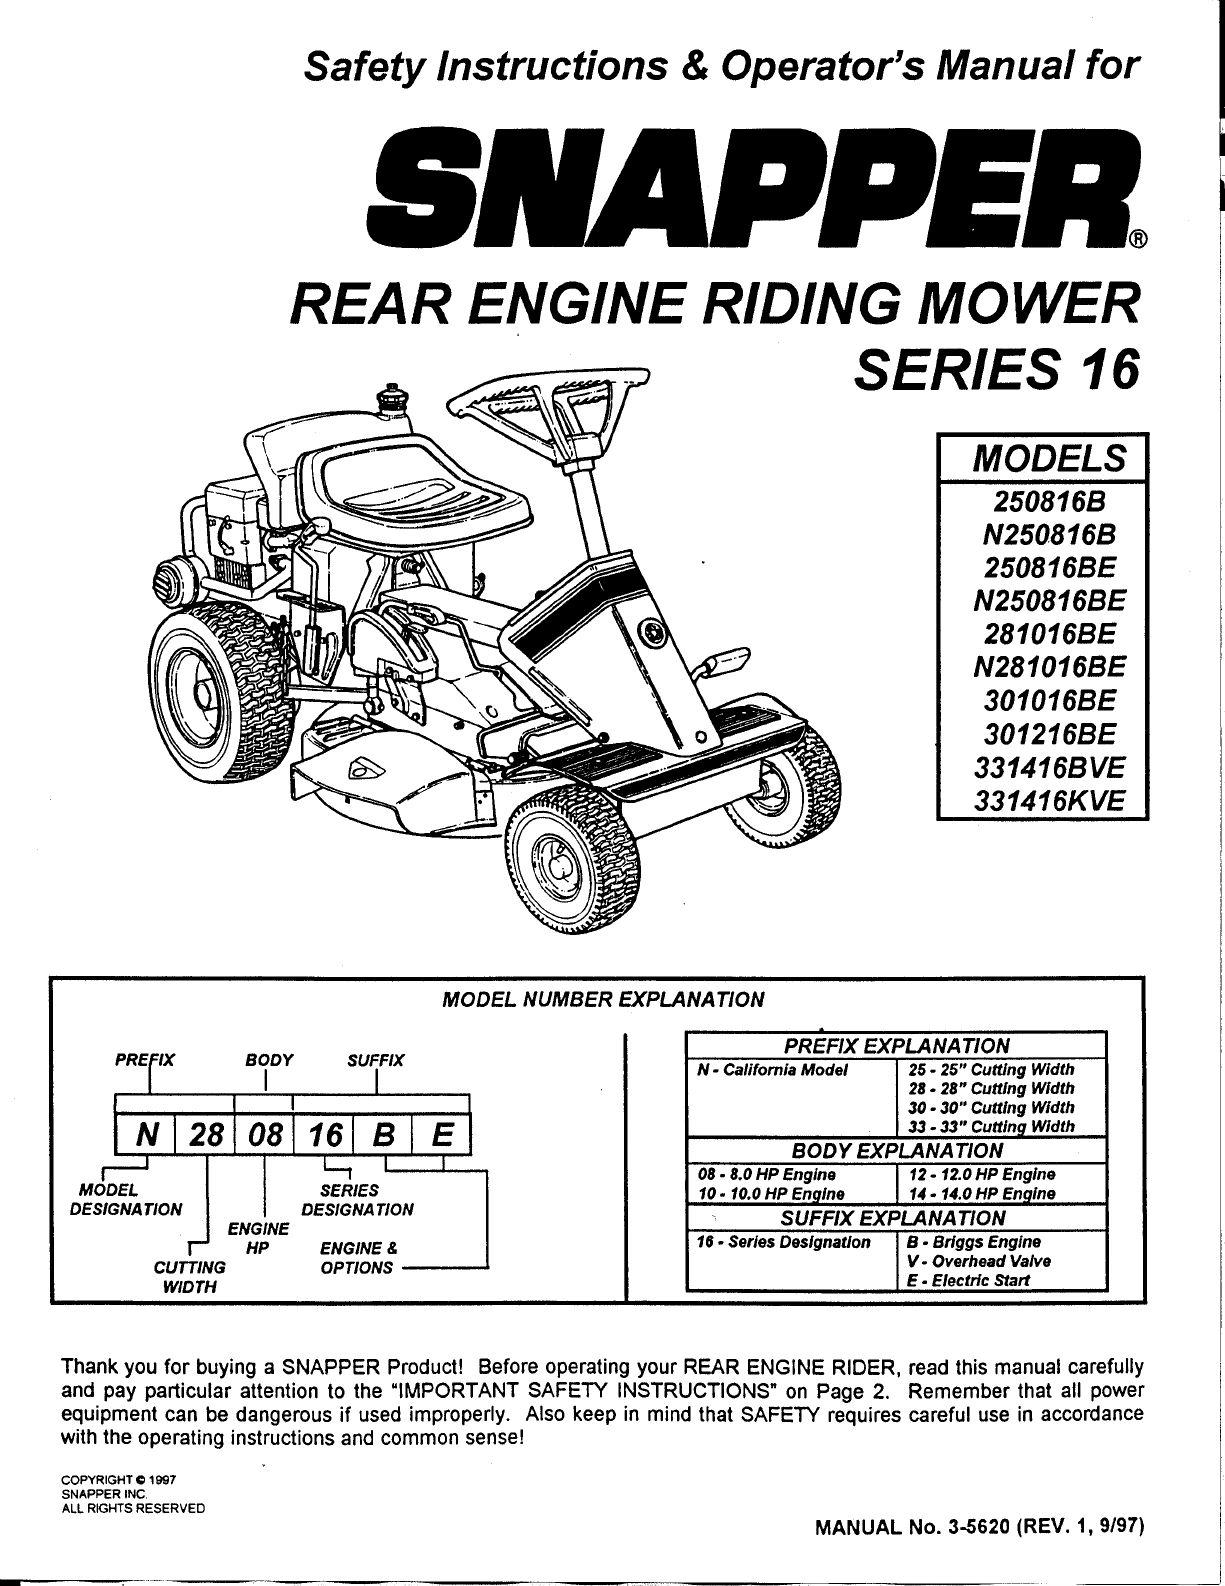 snapper parts manual free owners manual u2022 rh wordworksbysea com Old Snapper Lawn Mower snapper lawn mower owner's manual